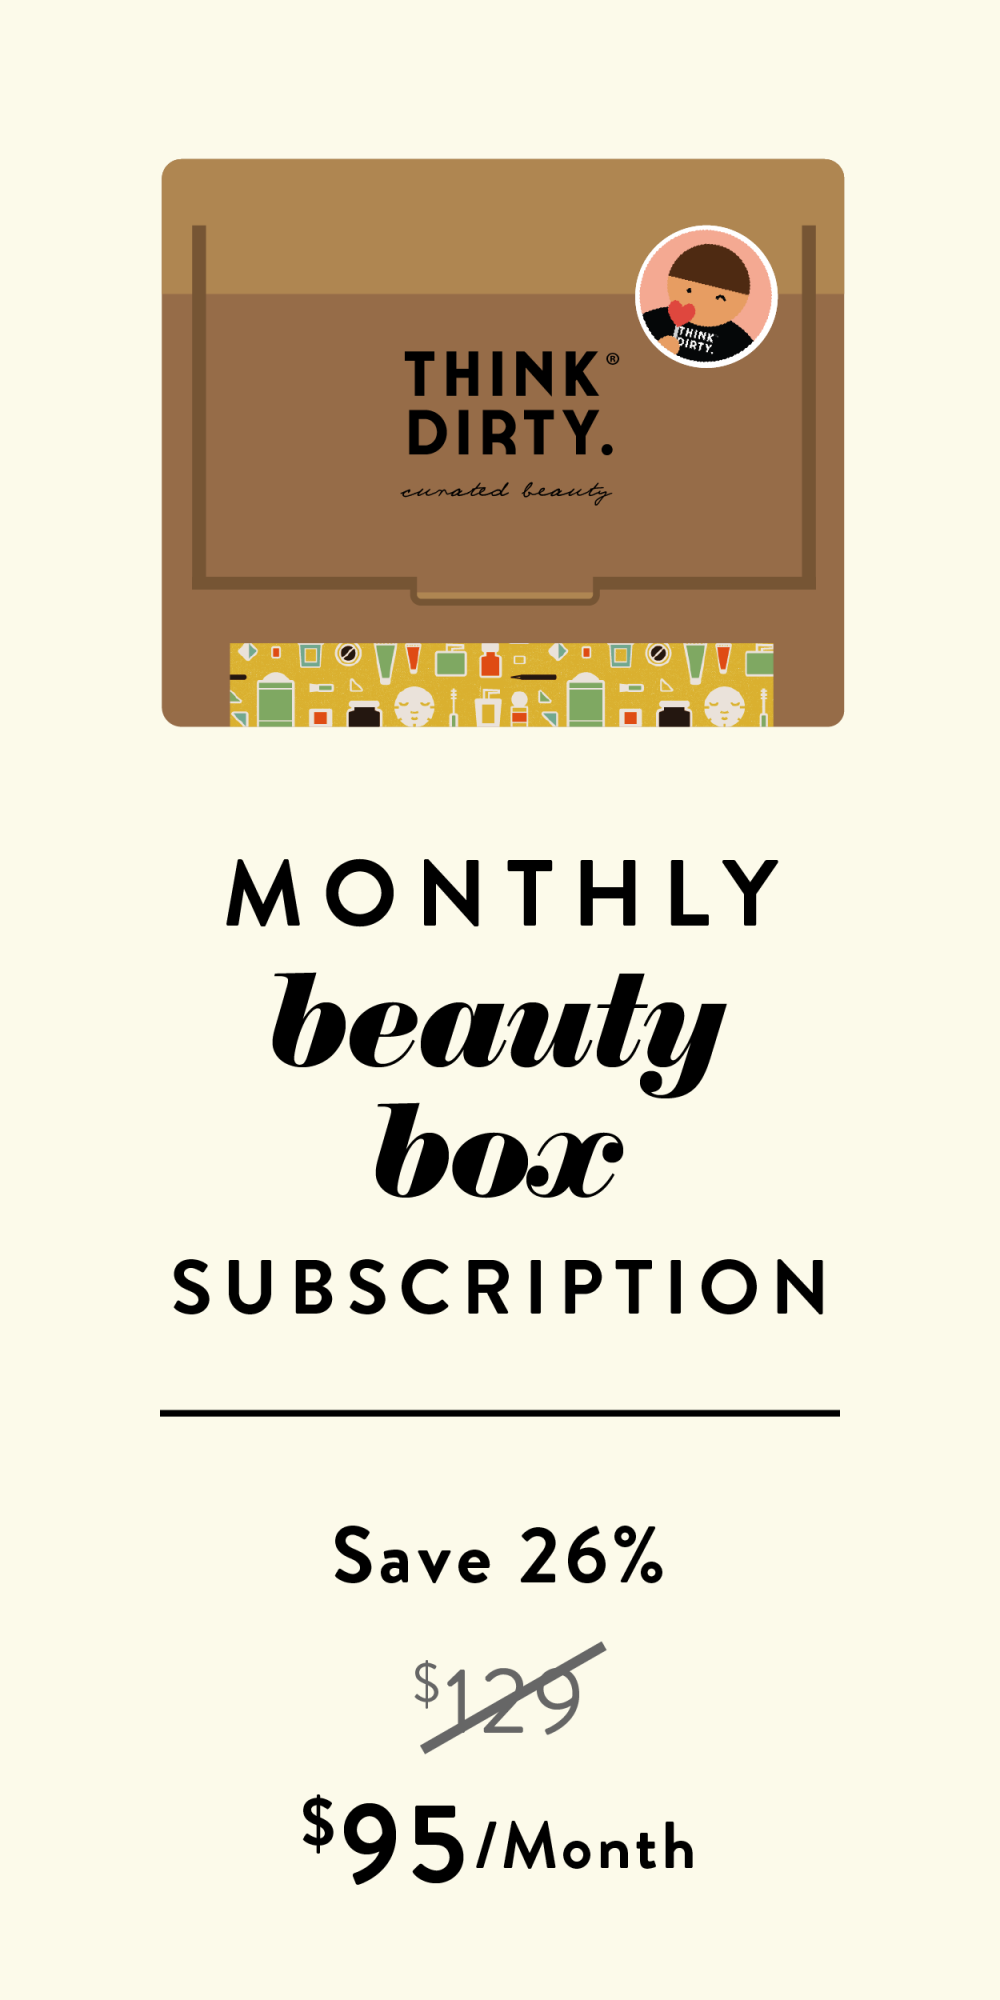 Monthly beauty box